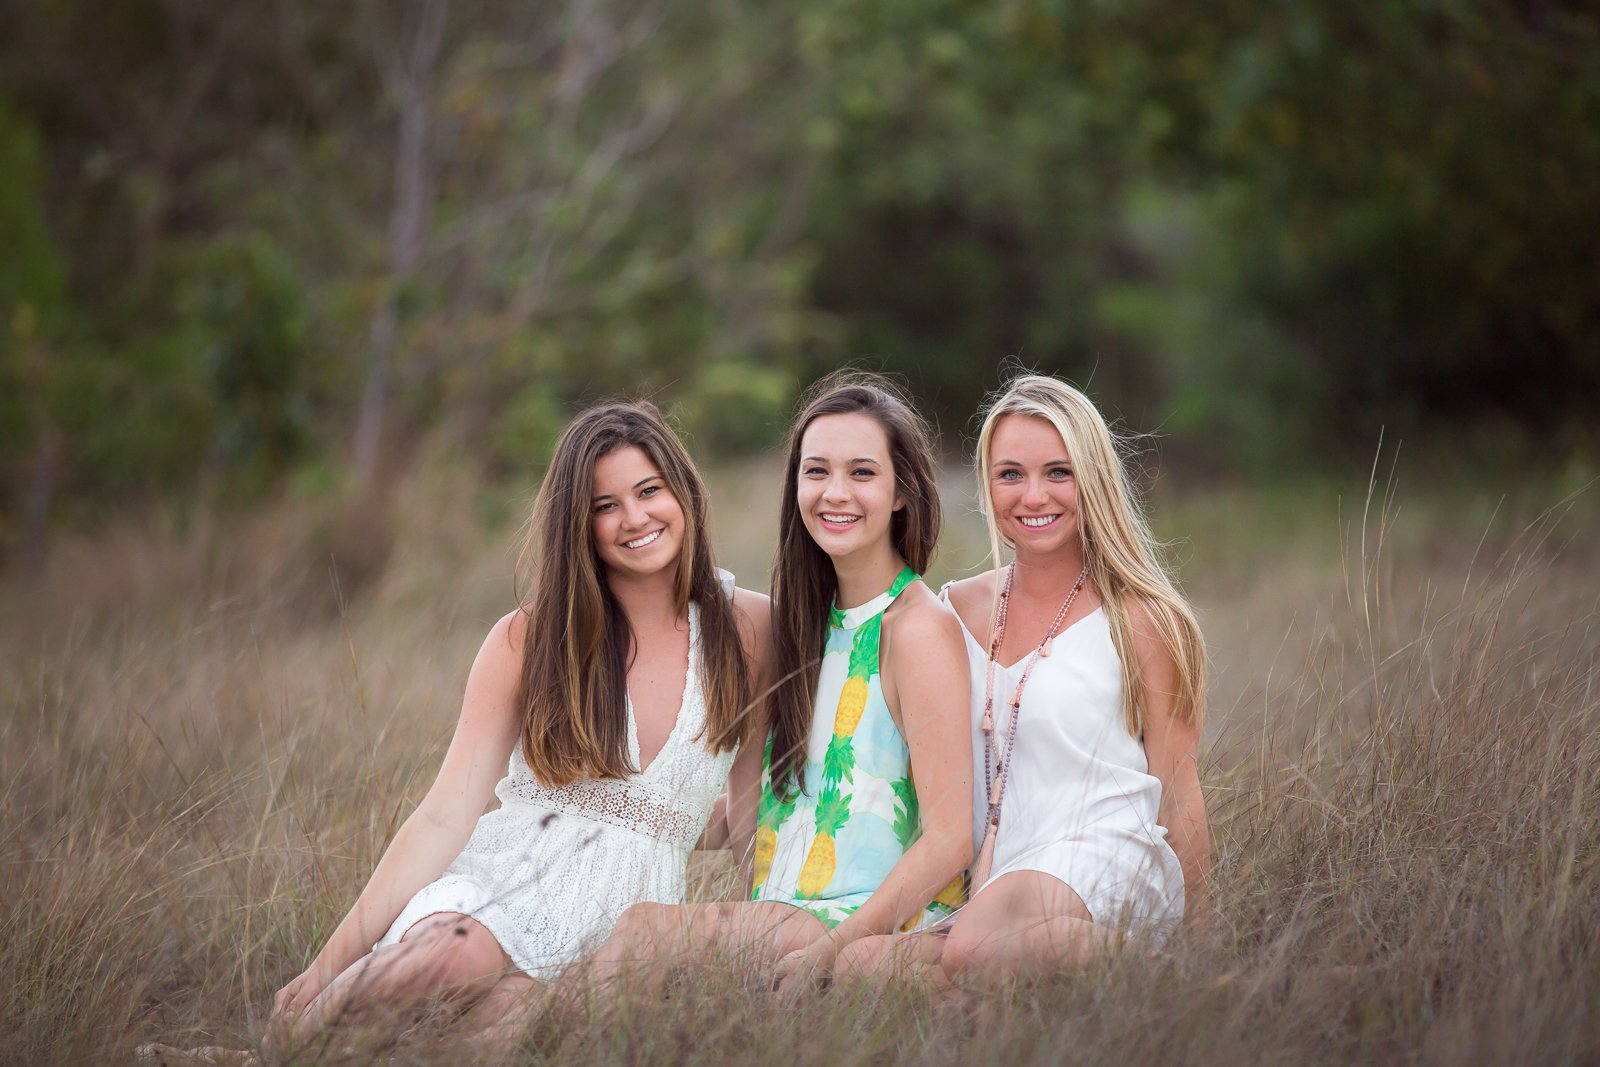 3 girls sitting in the grass posing for family photo